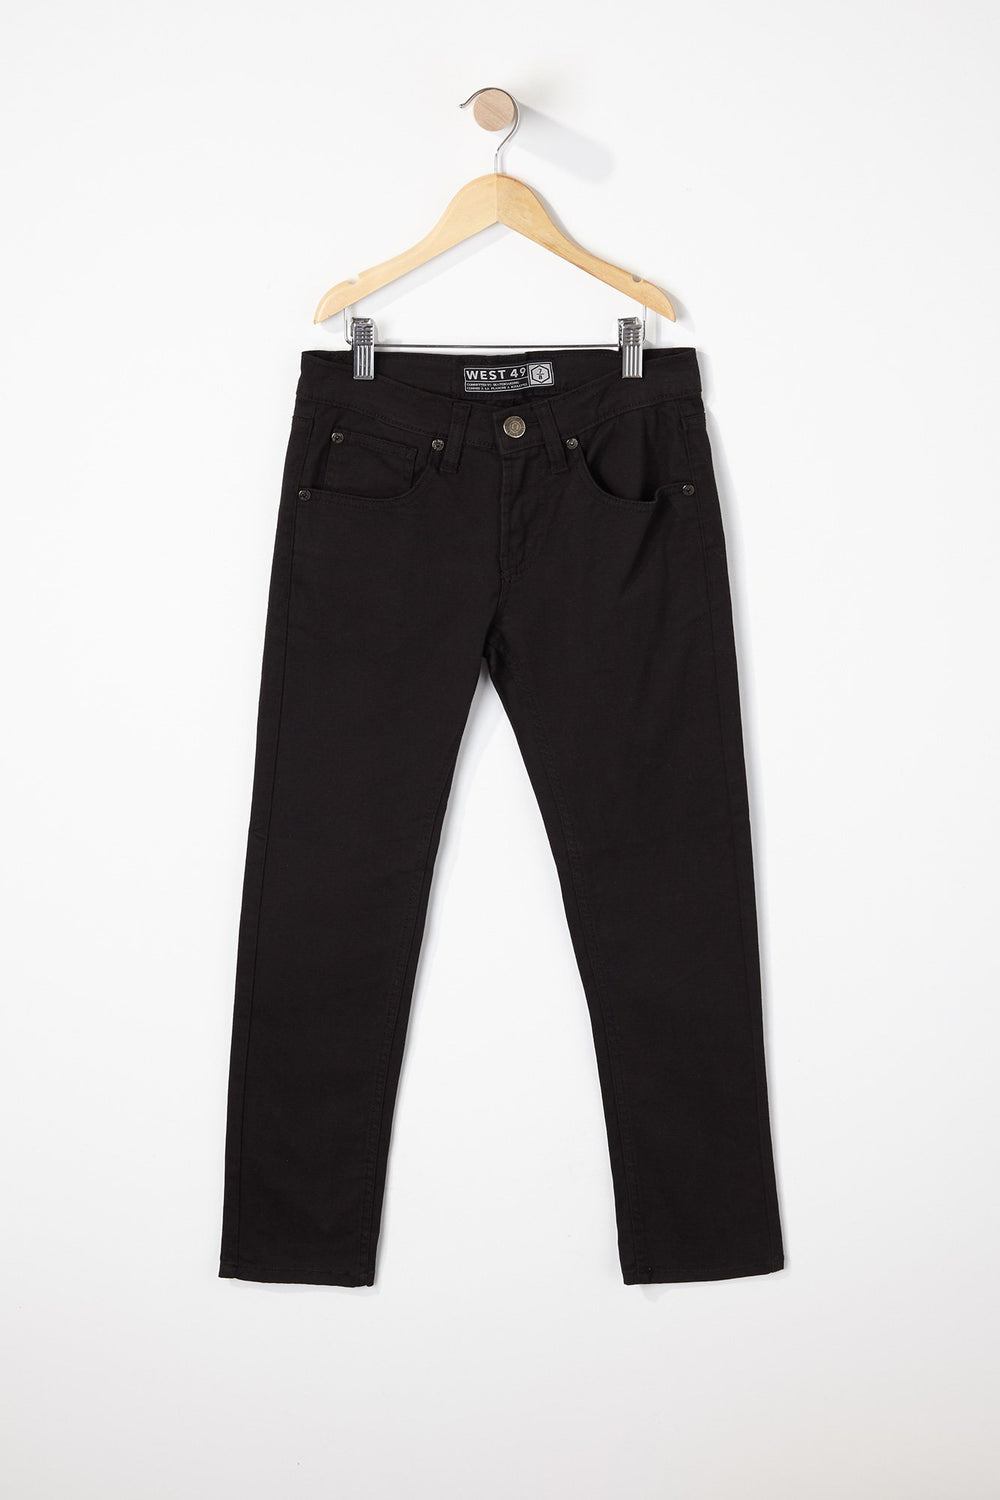 West49 Boys Solid Colour Skinny Pants Black